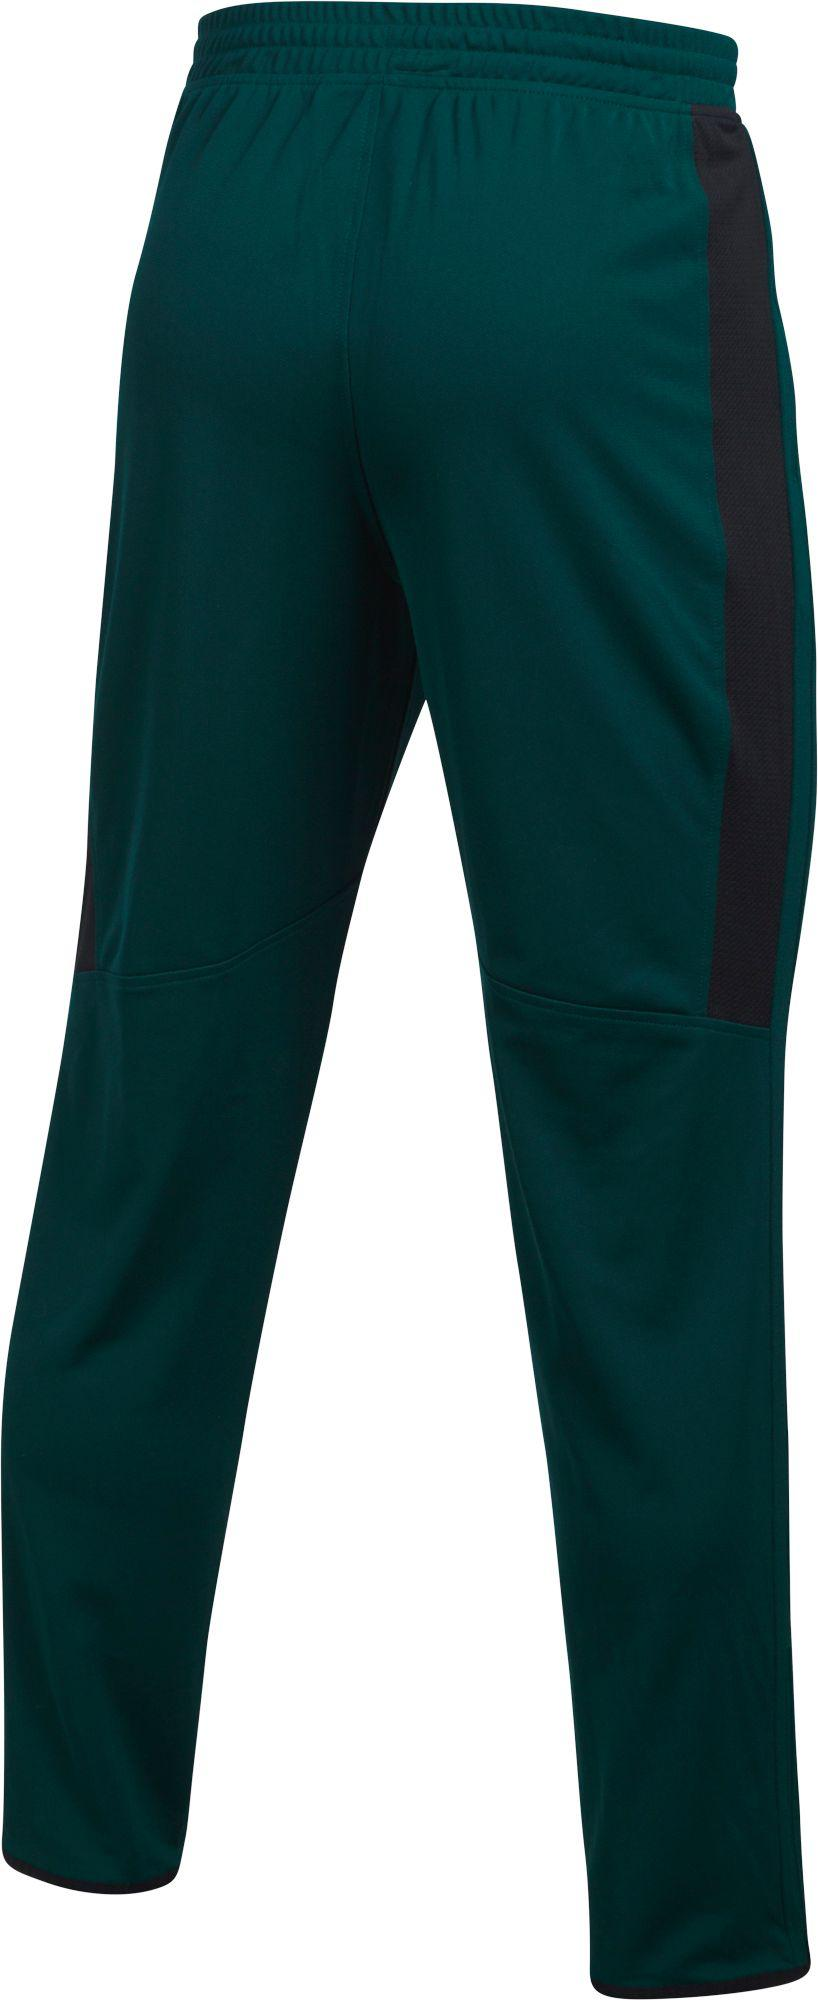 meet many choices of top-rated professional Under Armour Green Maverick Tapered Pants for men